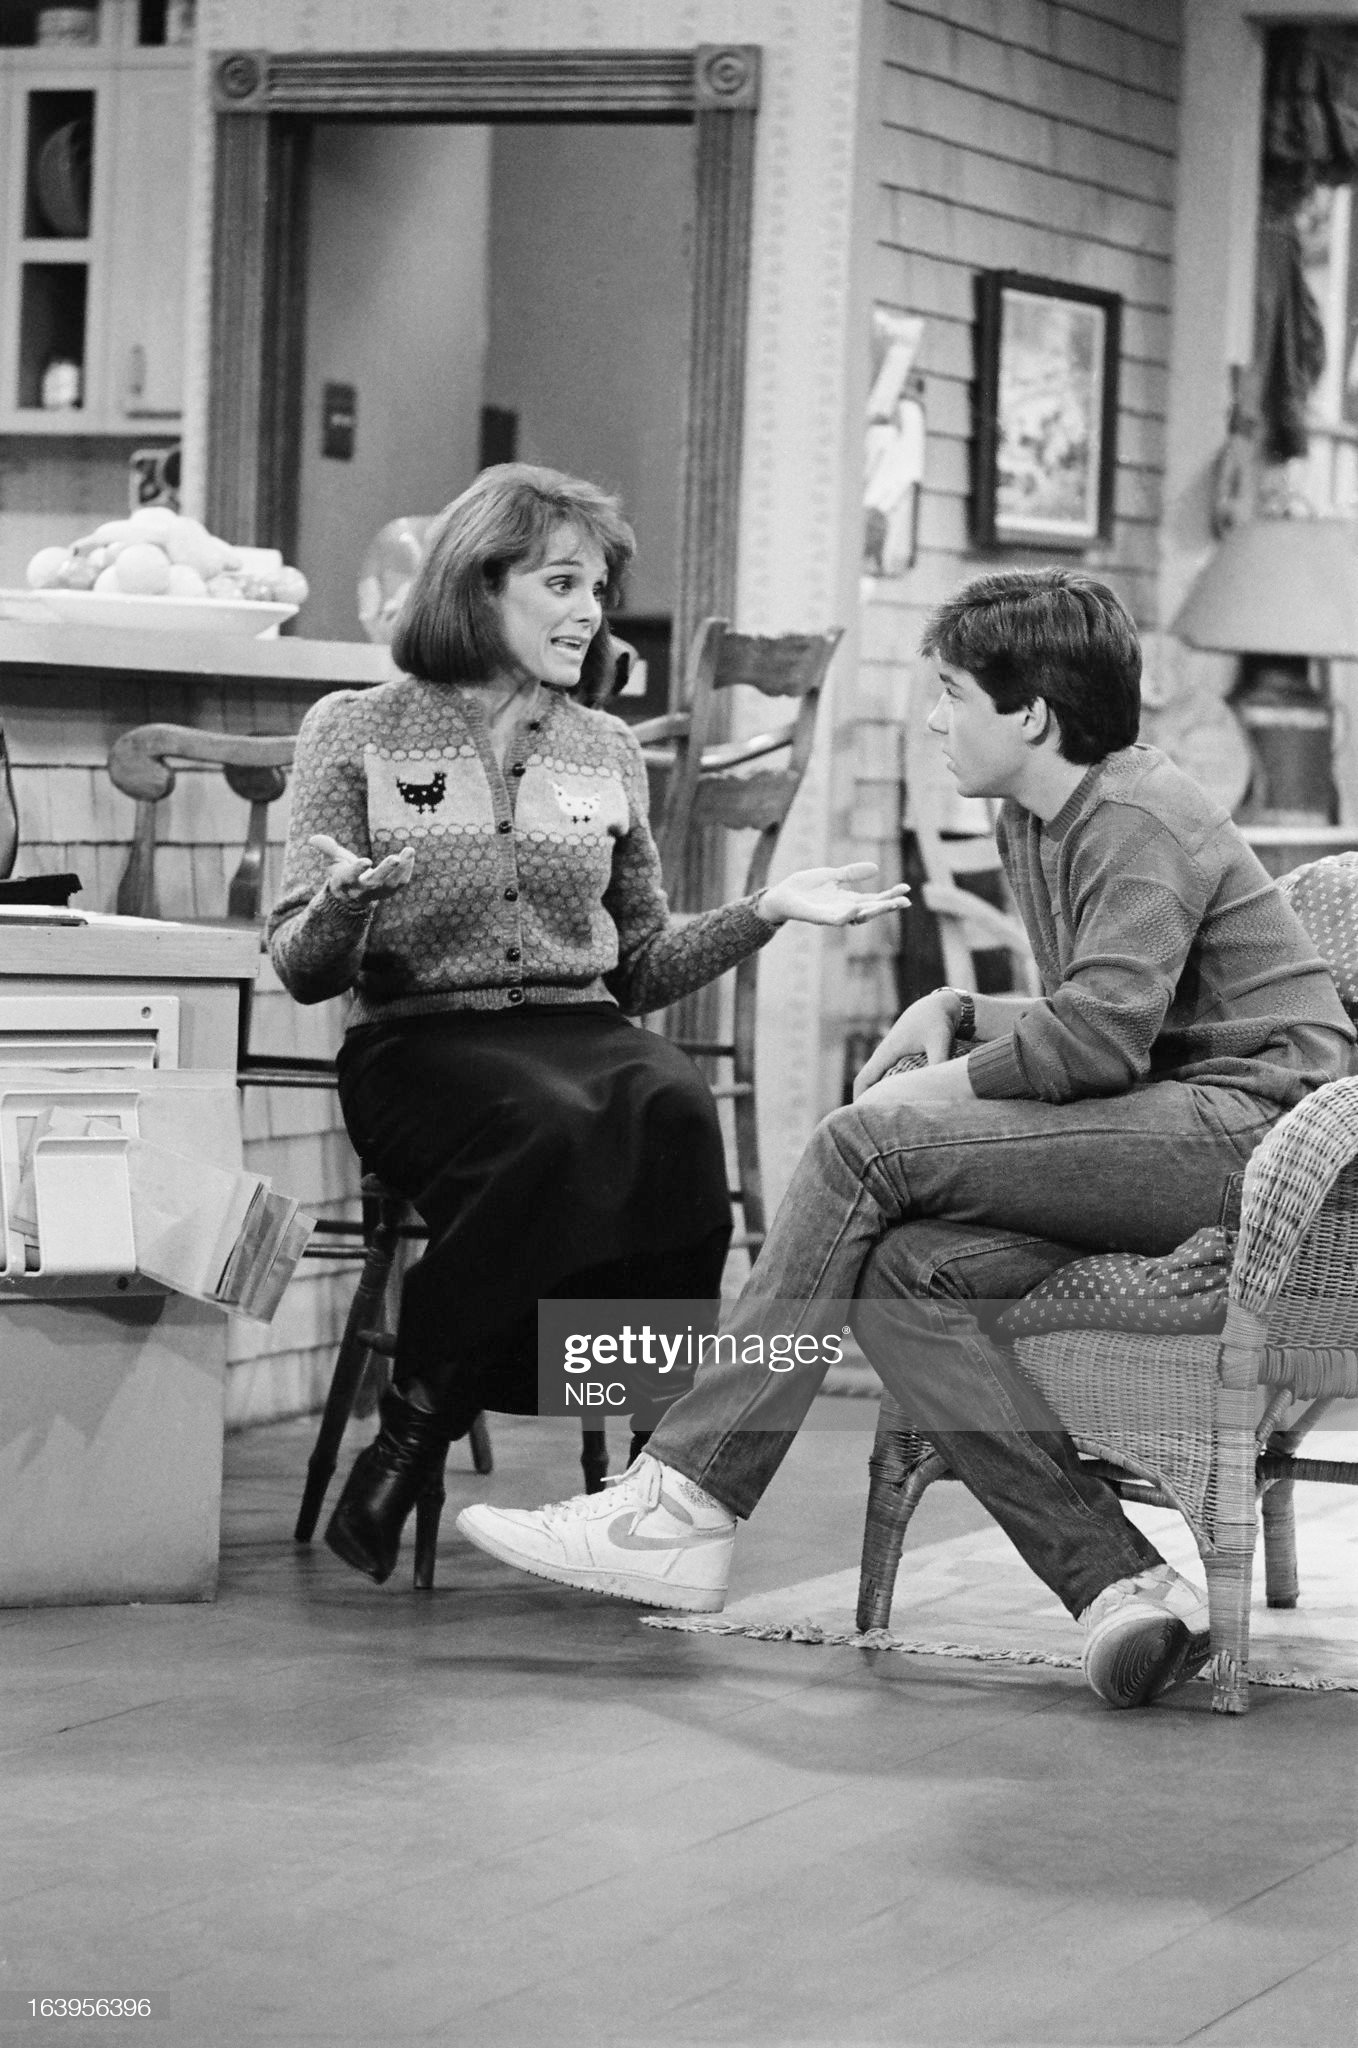 one-of-the-boys-episode-104-pictured-valerie-harper-as-valerie-hogan-picture-id163956396